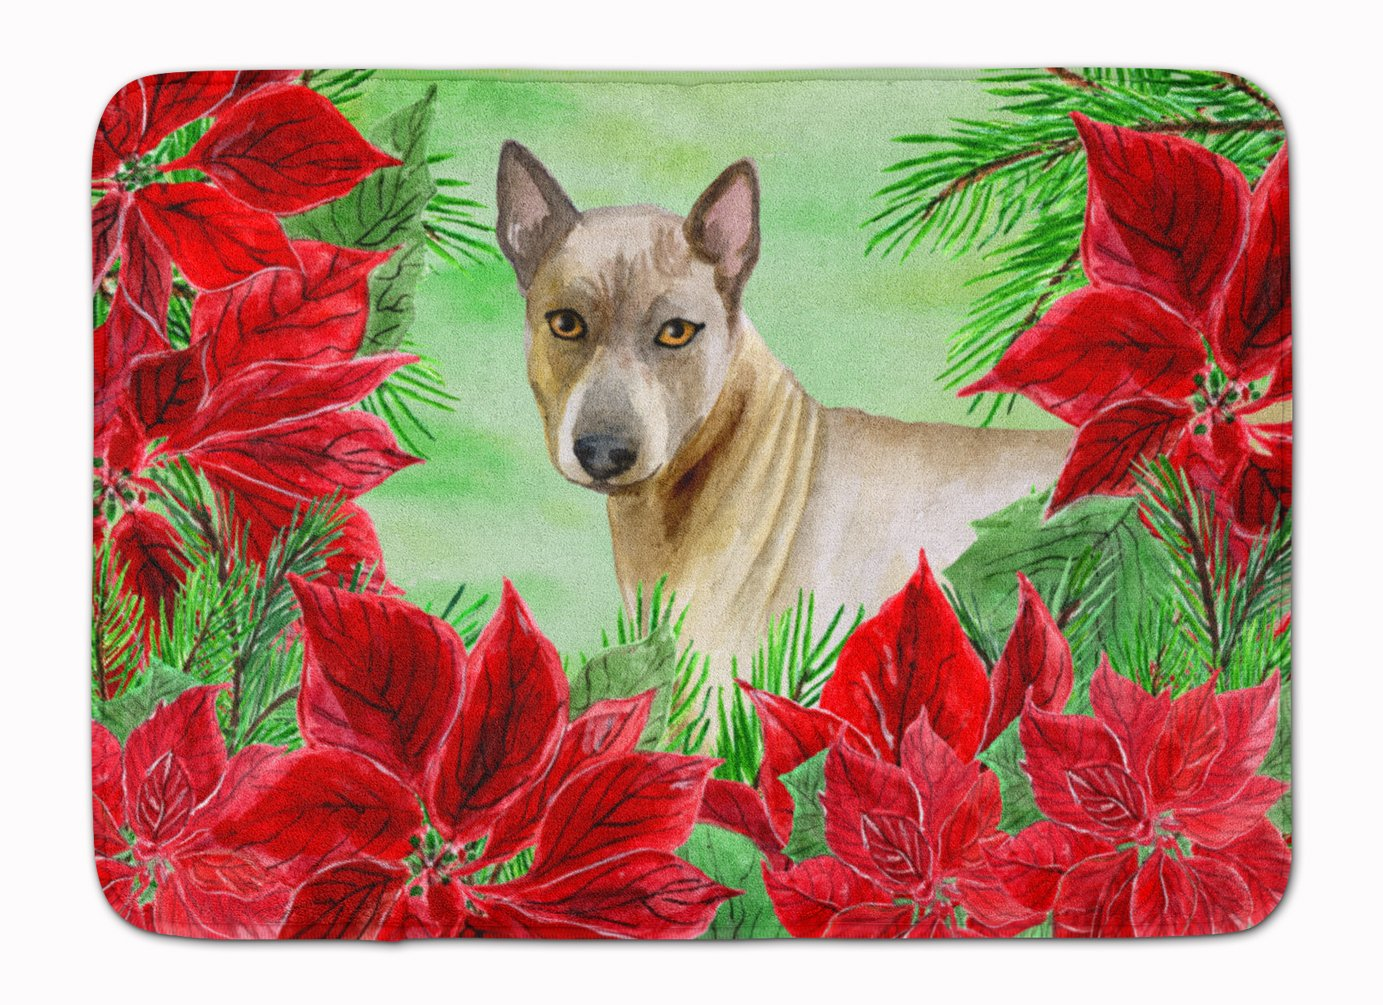 Caroline's Treasures Thai Ridgeback Poinsettias Floor Mat, 19'' x 27'', Multicolor by Caroline's Treasures